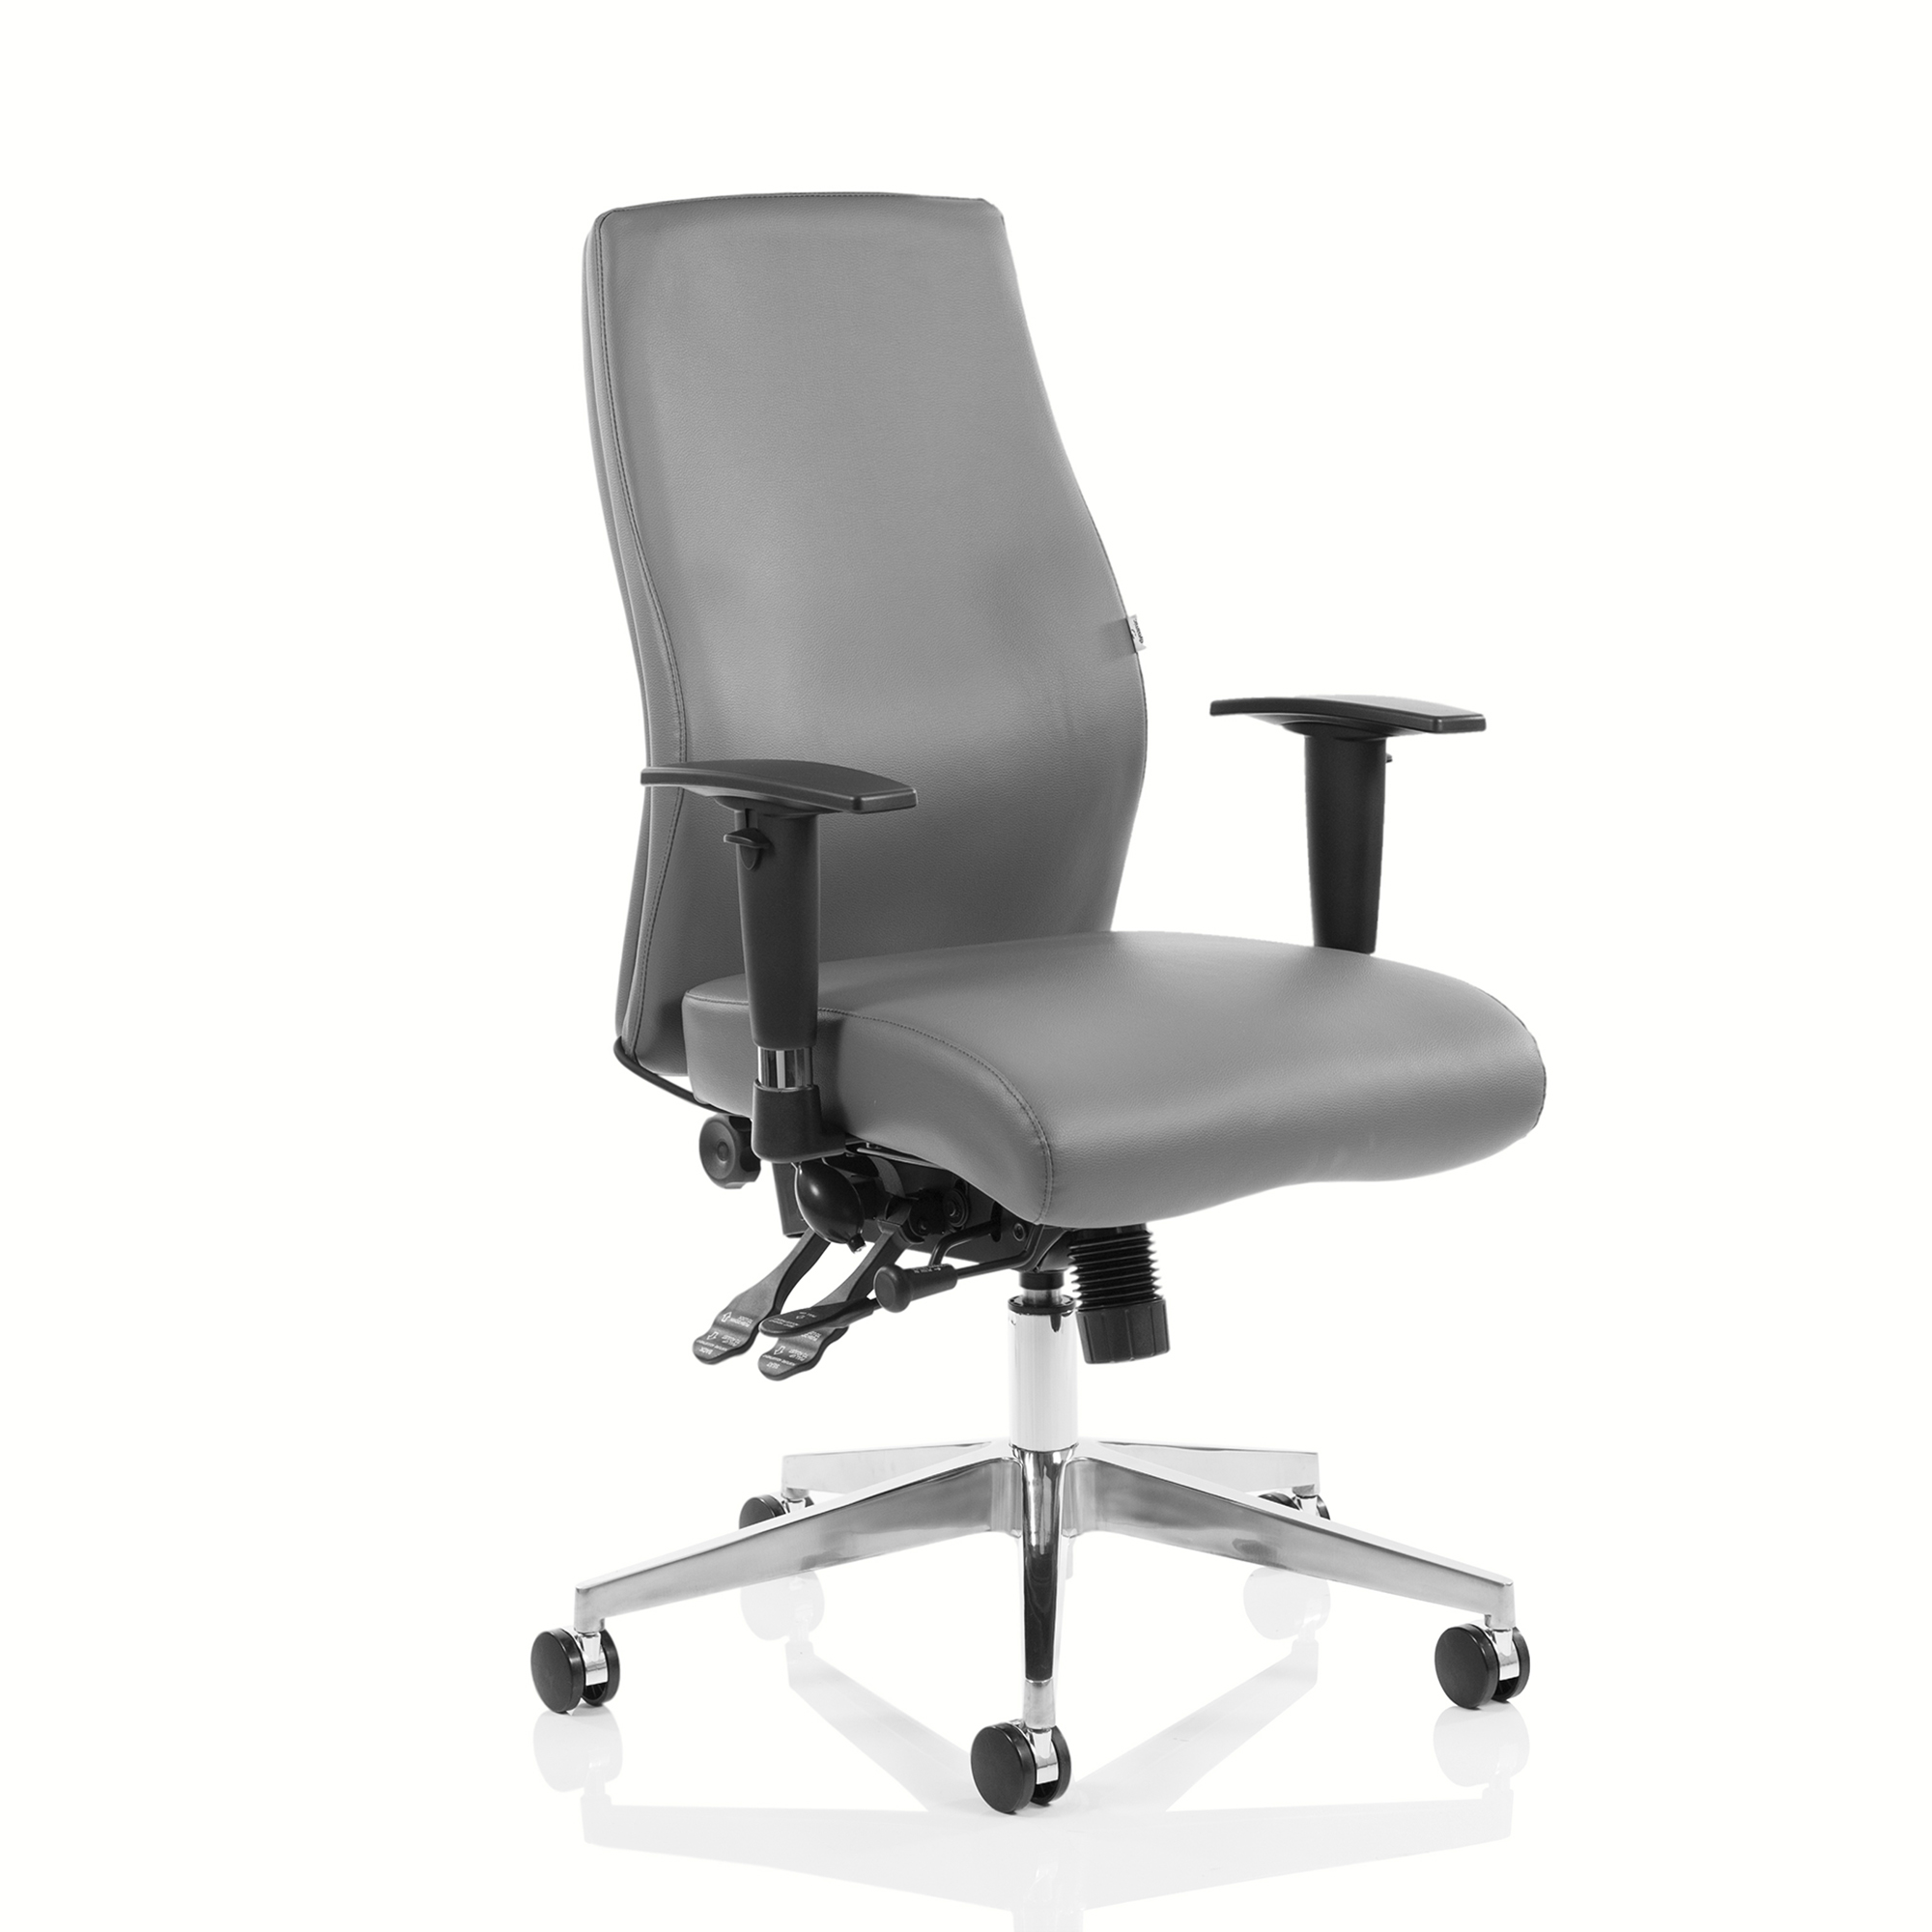 Adroit Onyx Ergo Posture Chair Without Headrest With Arms Bonded Leather Grey Ref OP000223